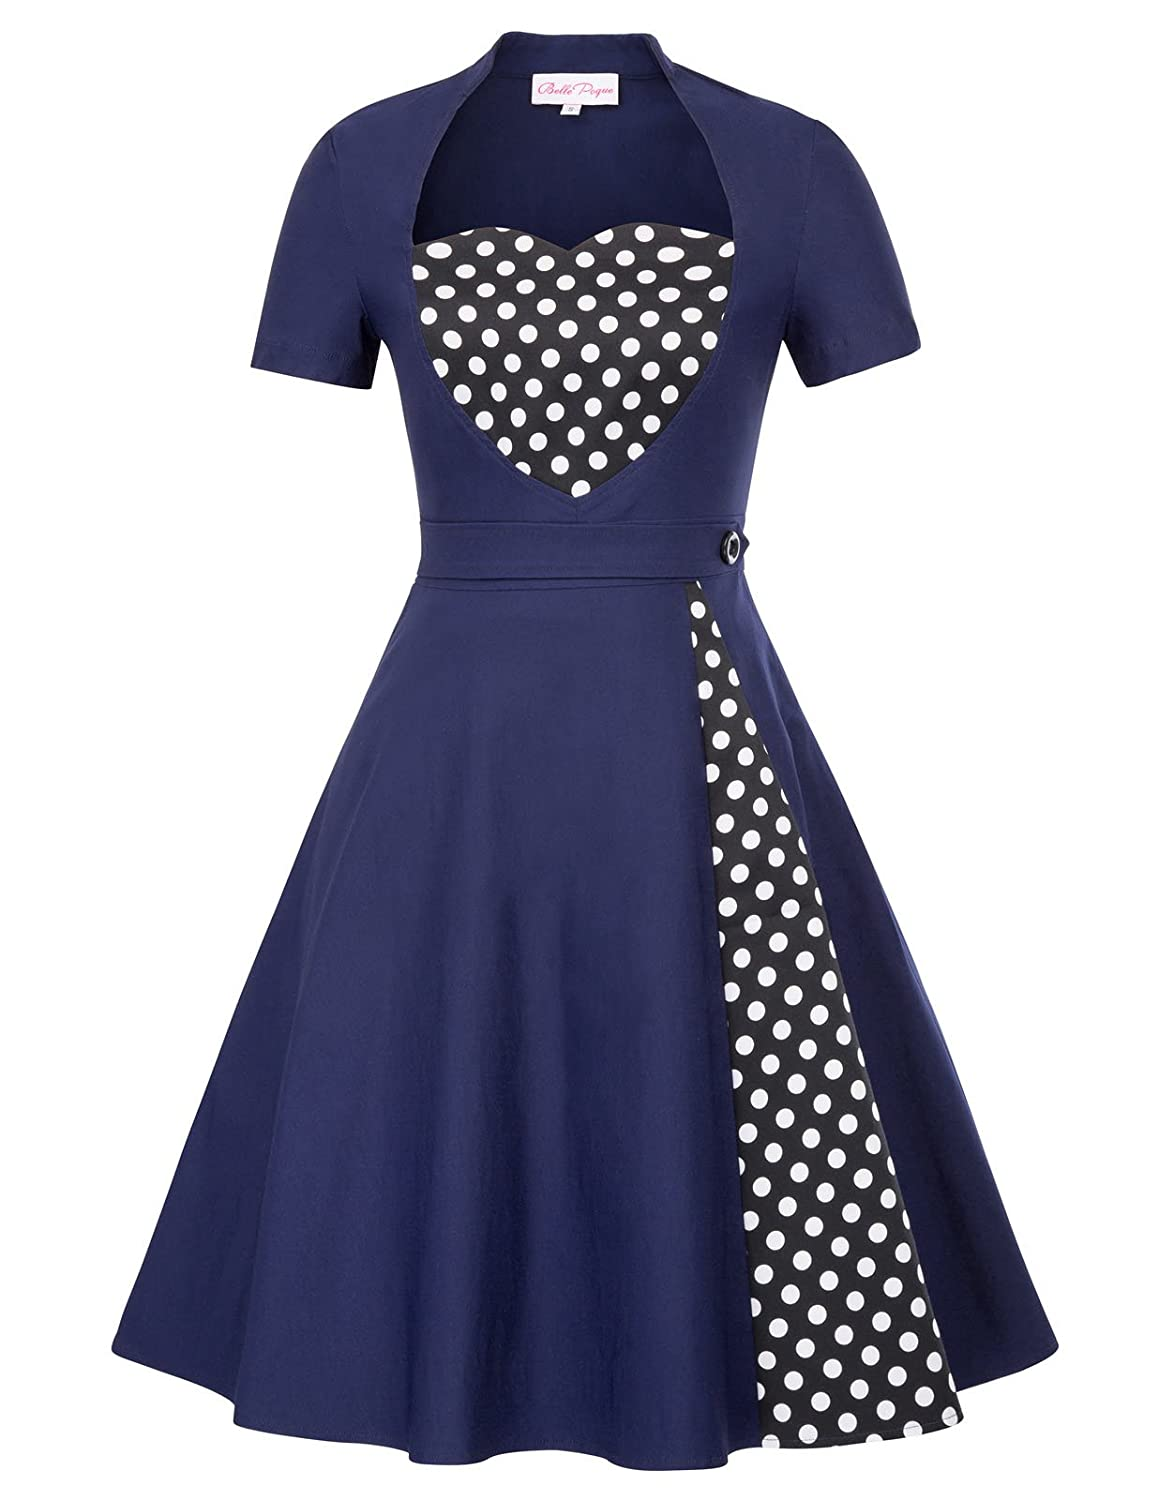 d04f1a98473f3 Rockabilly 1950s vintage style, sexy flare swing dress. High quality  stretch fabric will give you a good skin experince. Polka dots embellished  on the front ...